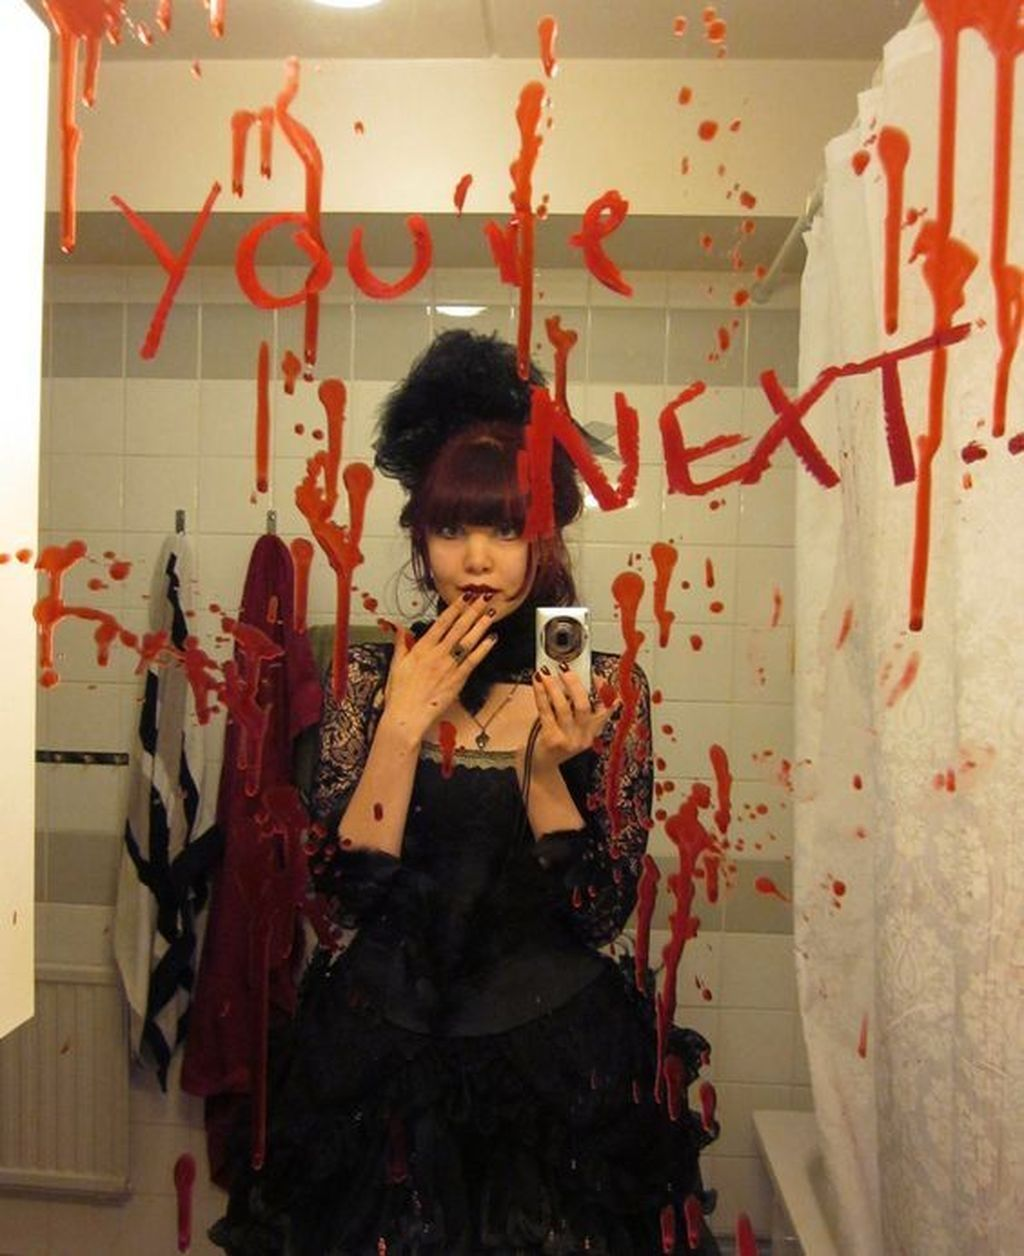 30+ Scary Halloween Decorating Ideas For Your Bathroom